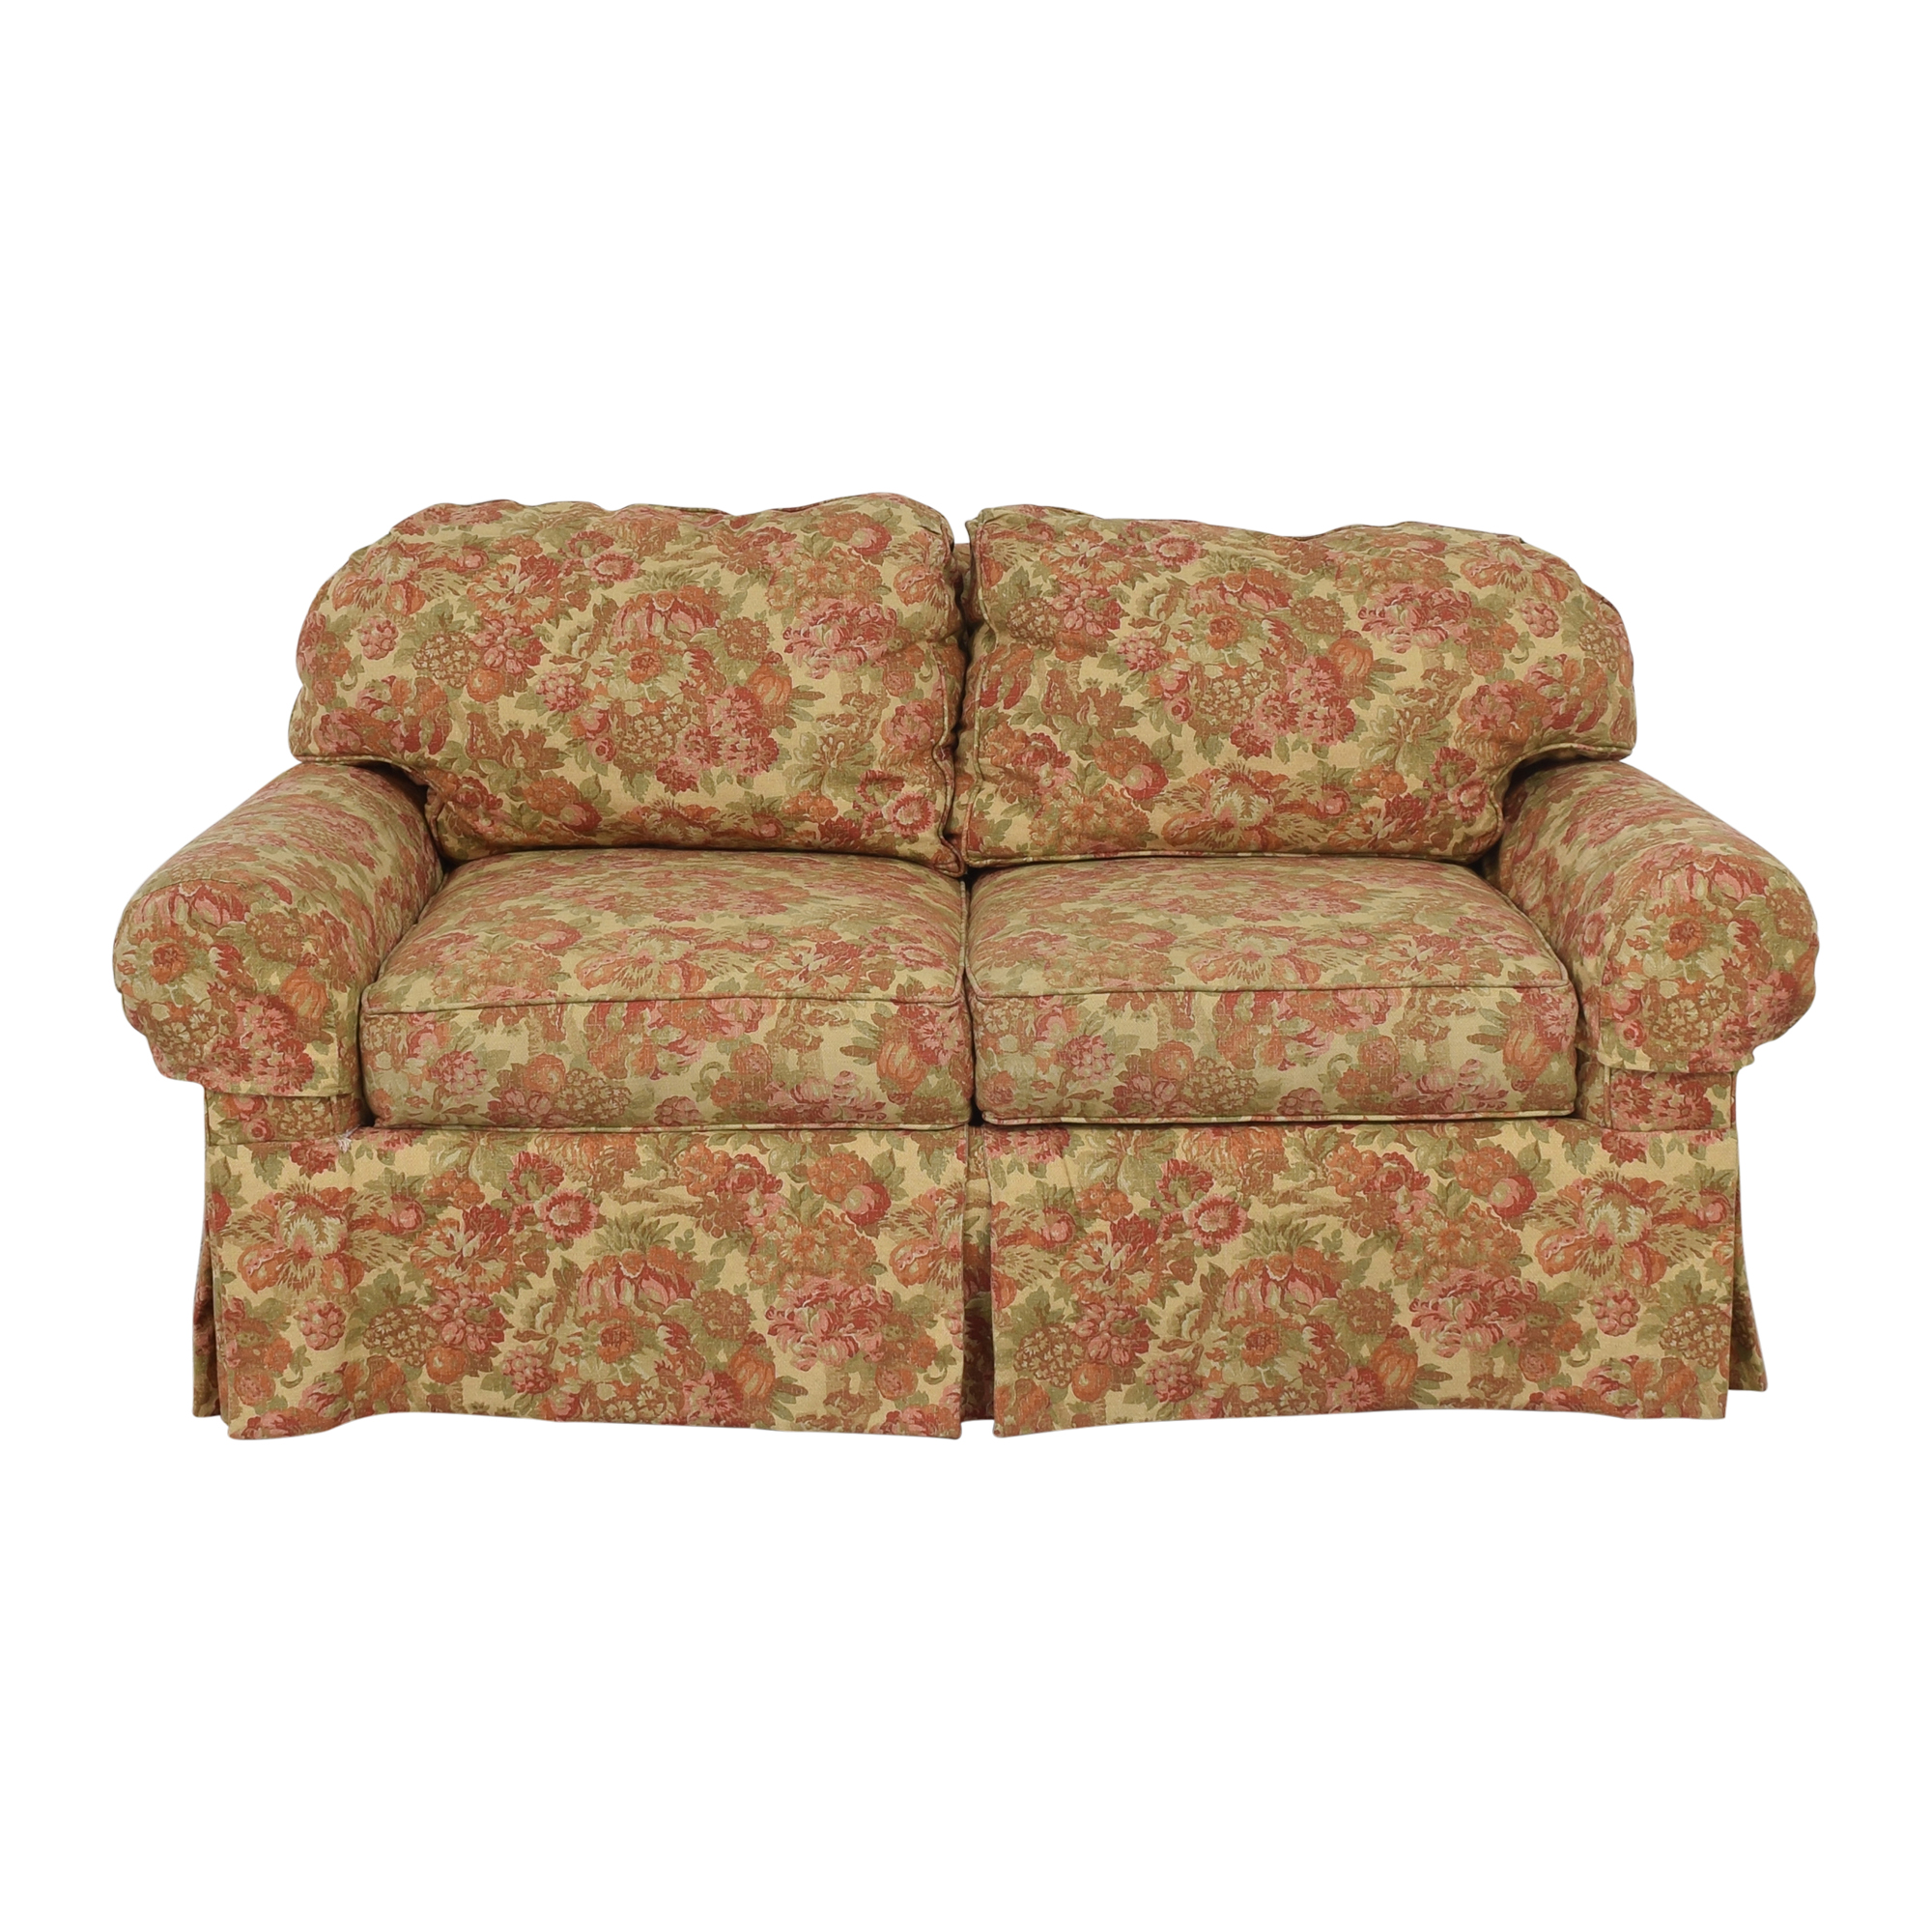 buy Stanford Furniture Skirted Roll Arm Loveseat Stanford Furniture